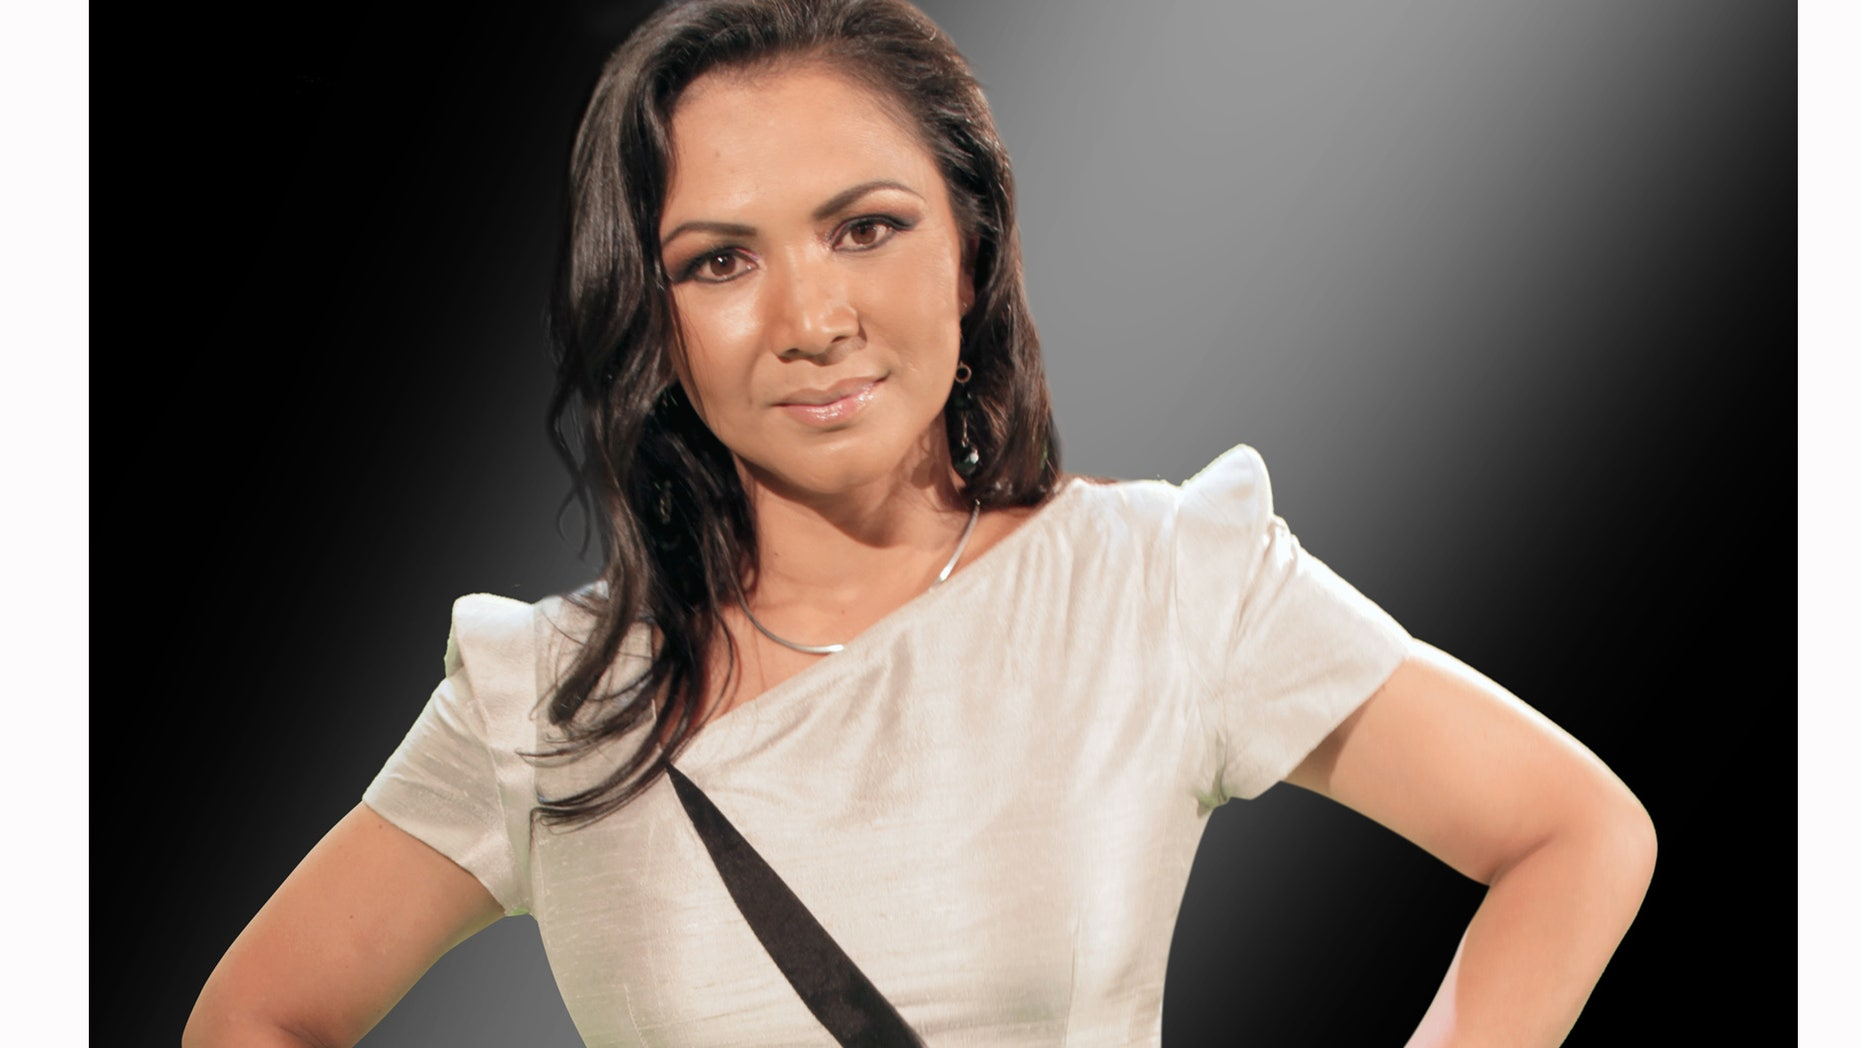 Rosario Vargas, winner of Mision Moda, Bolivia's version of the US TV show Project Runway, will present 15-18 of her Haute Couture designs at Miami Beach International Fashion Week 2012.